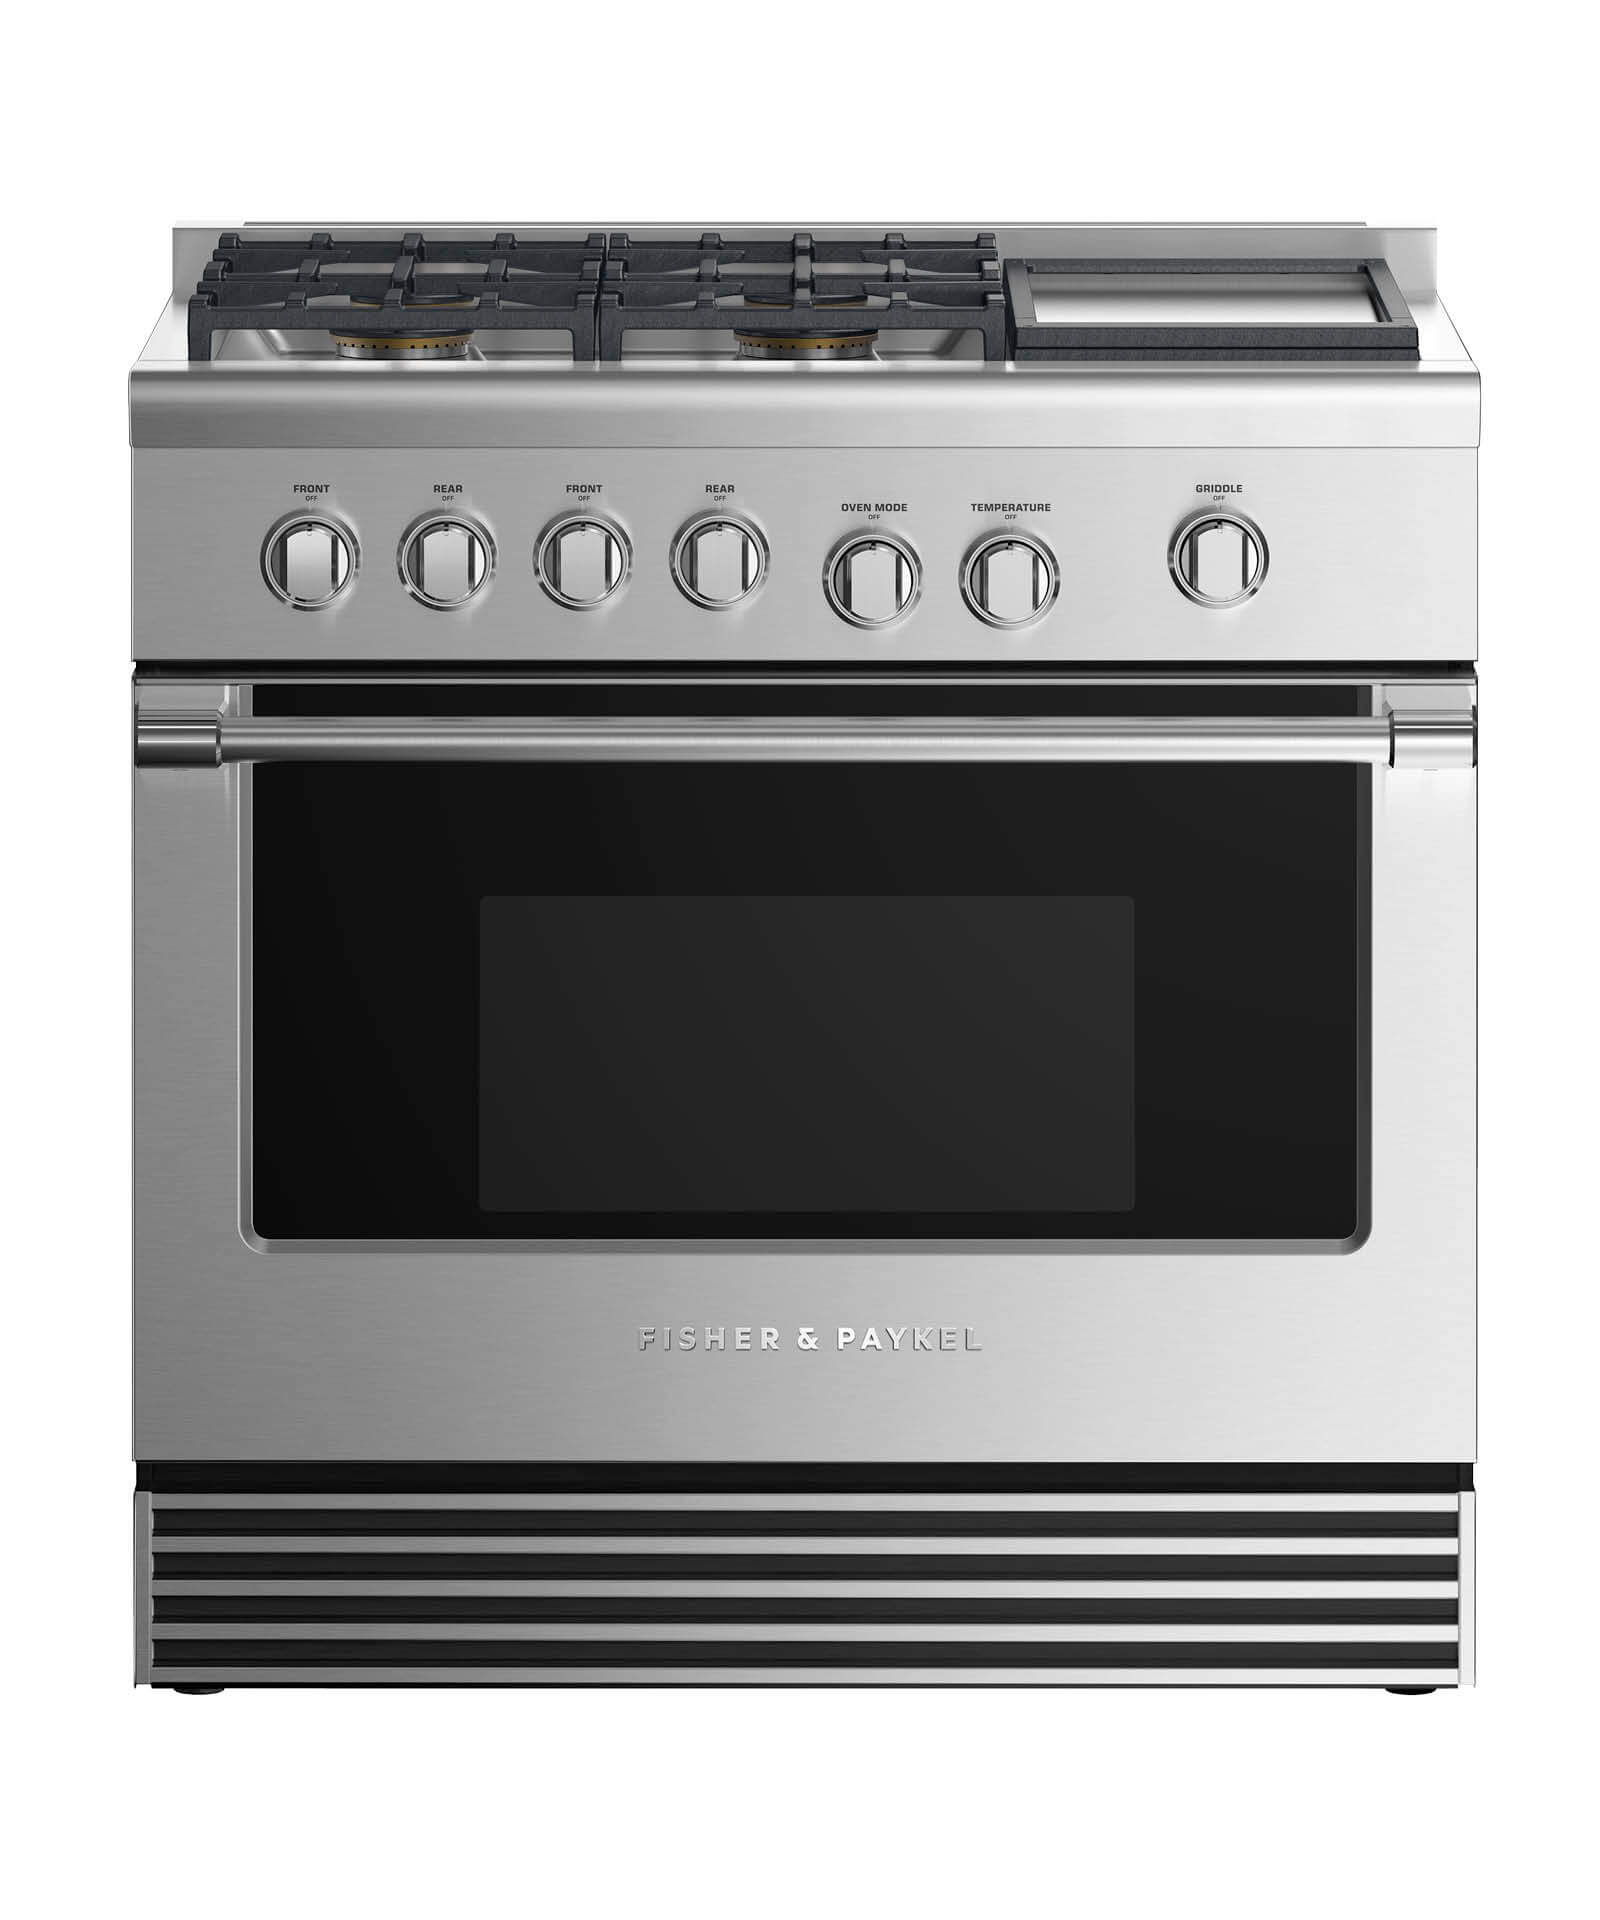 "Fisher and Paykel Dual Fuel Range 36"", 4 Burners with Griddle"